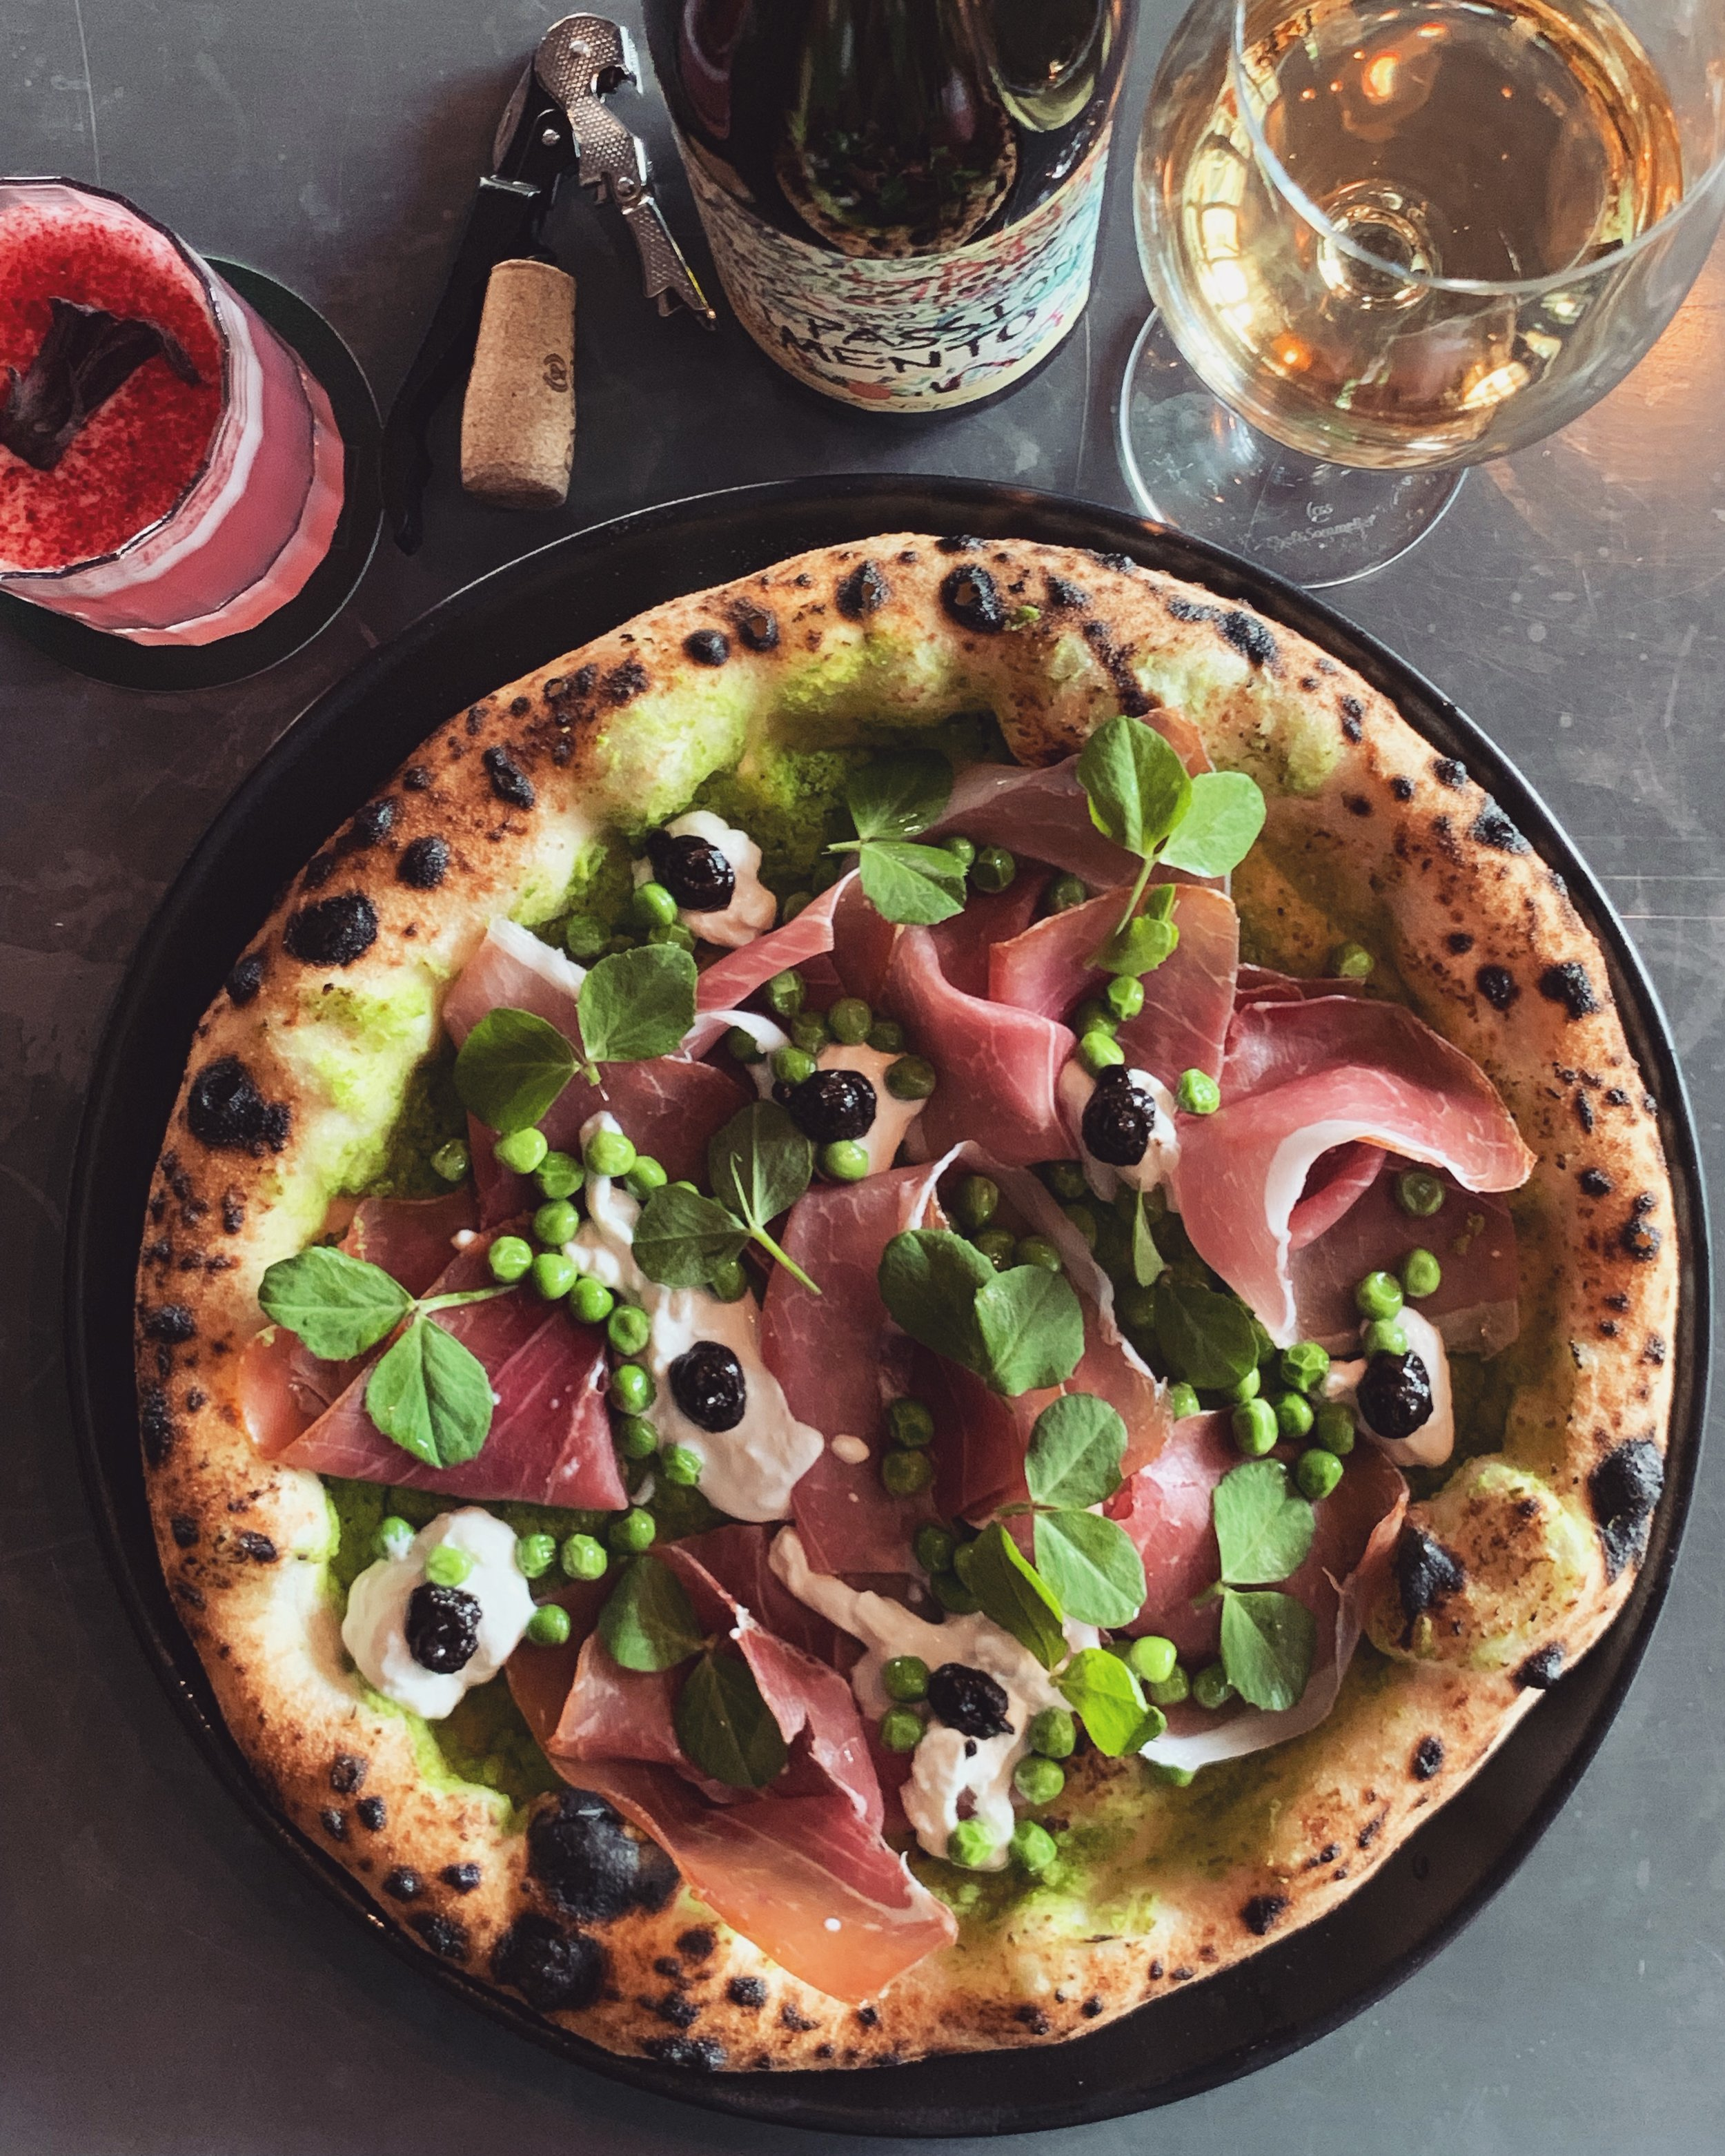 14-20 August - Who said pizza has to be red? 🍕 We tried red, white and green (pesto) but this week we used smashed green peas to create a delicious and nutritious pizza sauce..// Prosciutto di Parma, smashed green peas, stracciatella cheese, confit black garlic. //.Happy Thursday everyone!